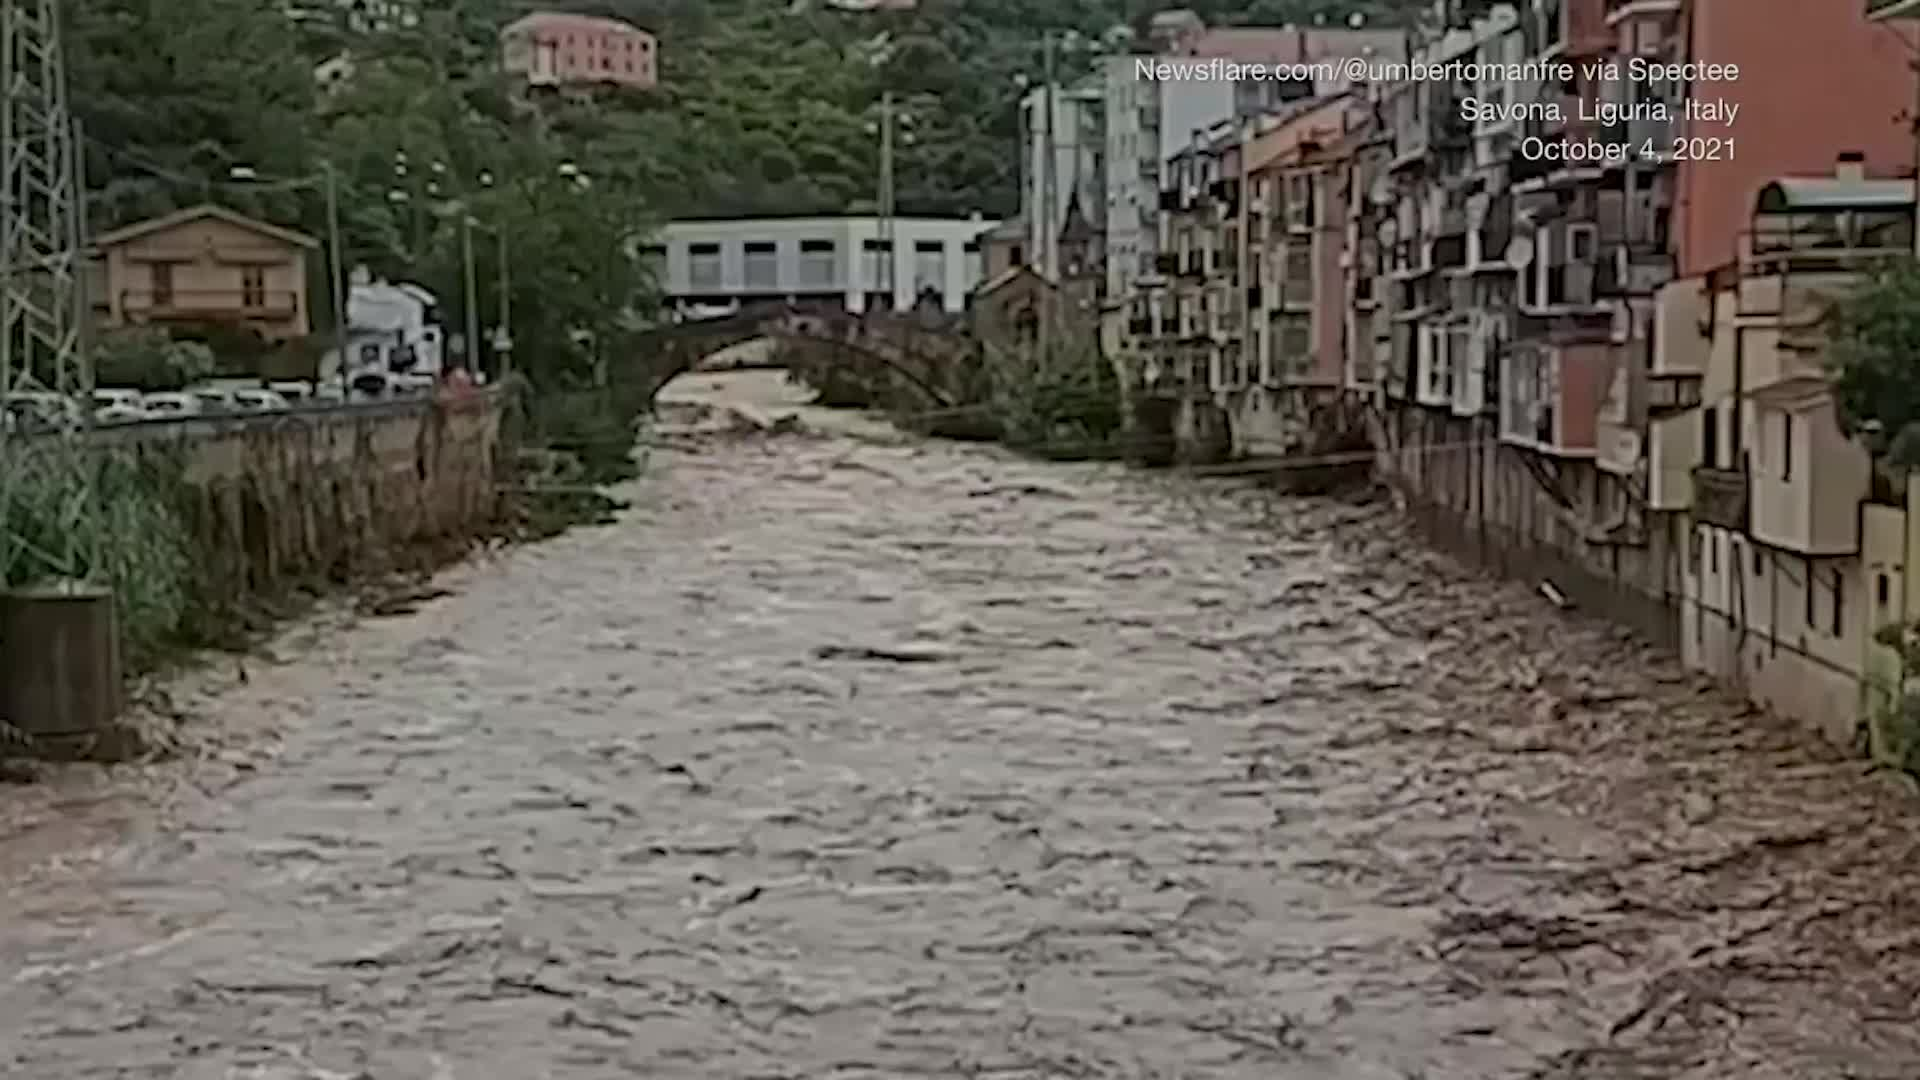 Nearly 3 Feet of Rain in 24 Hours in Italy - Videos from The Weather Channel | weather.com